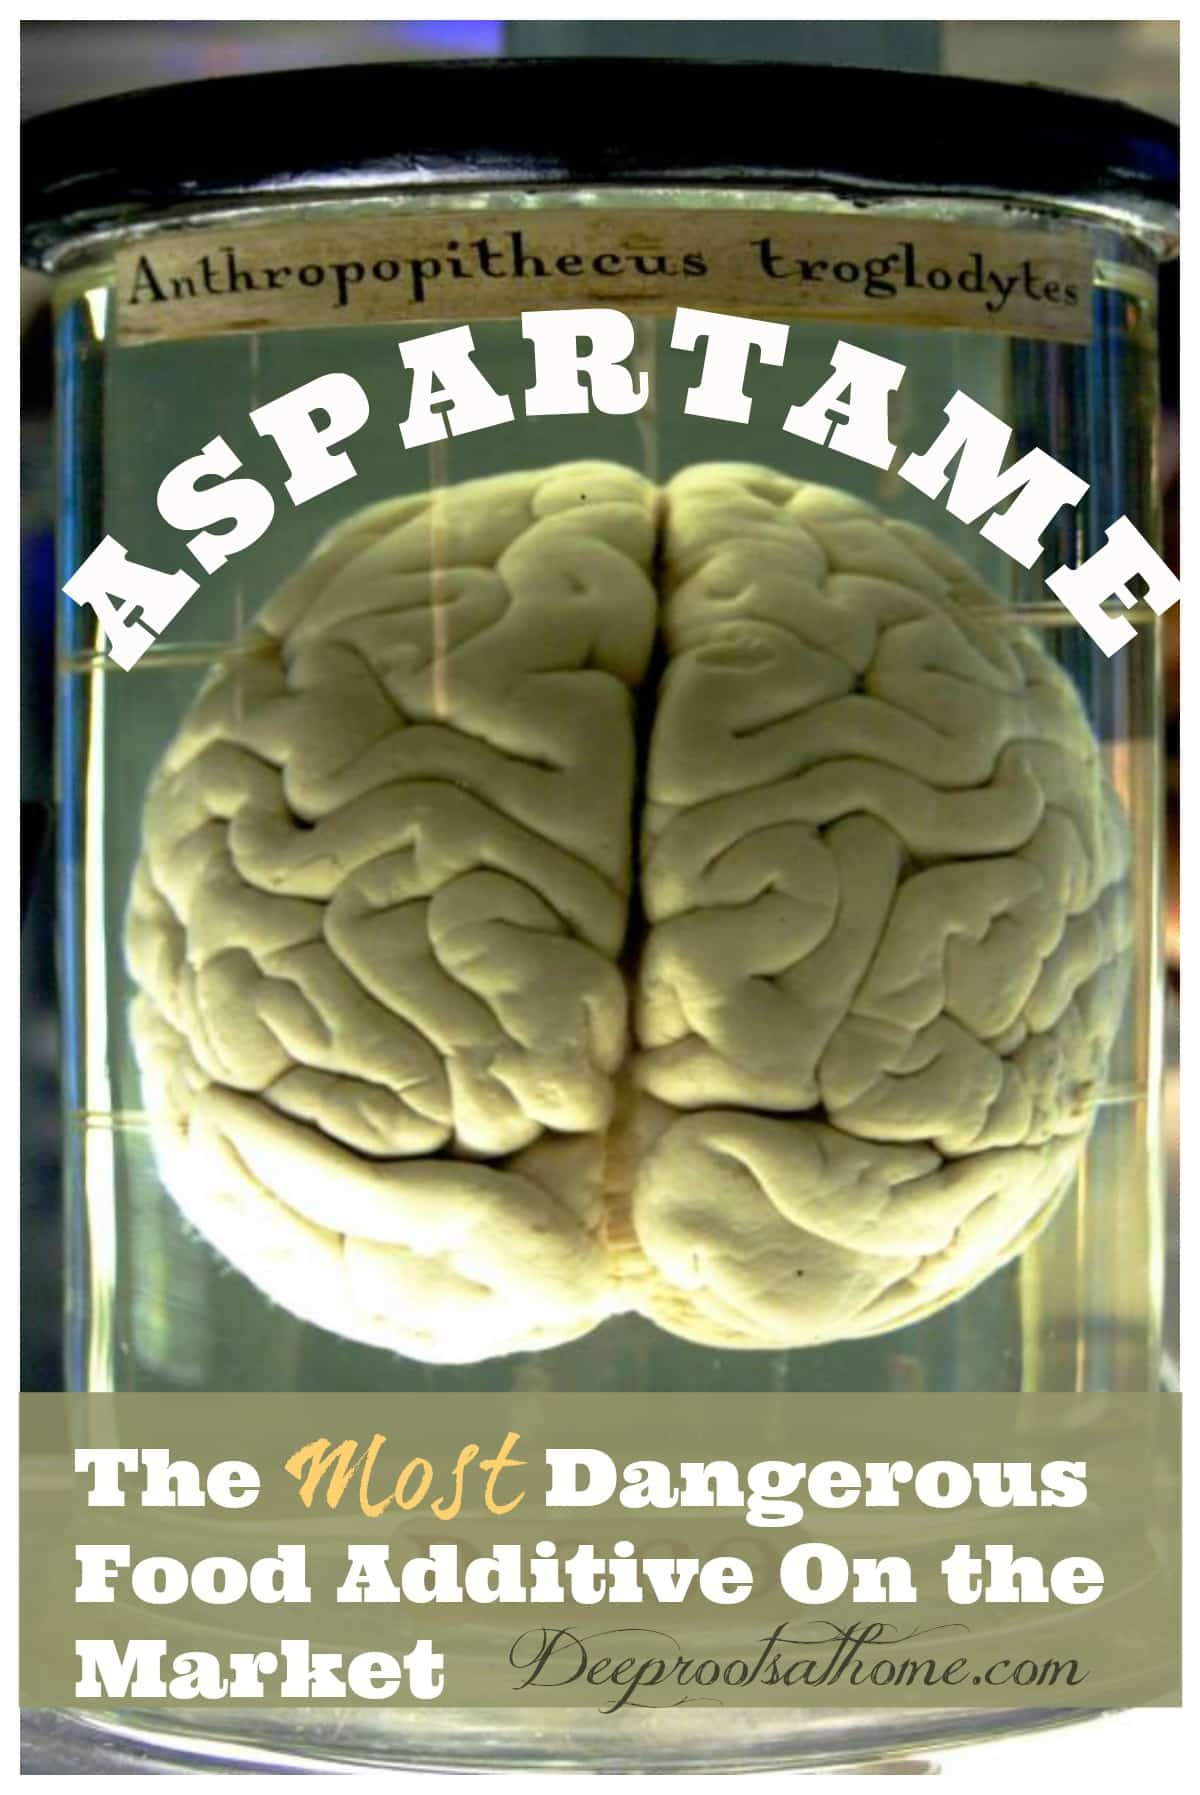 Aspartame: The Most Dangerous Food Additive On the Market